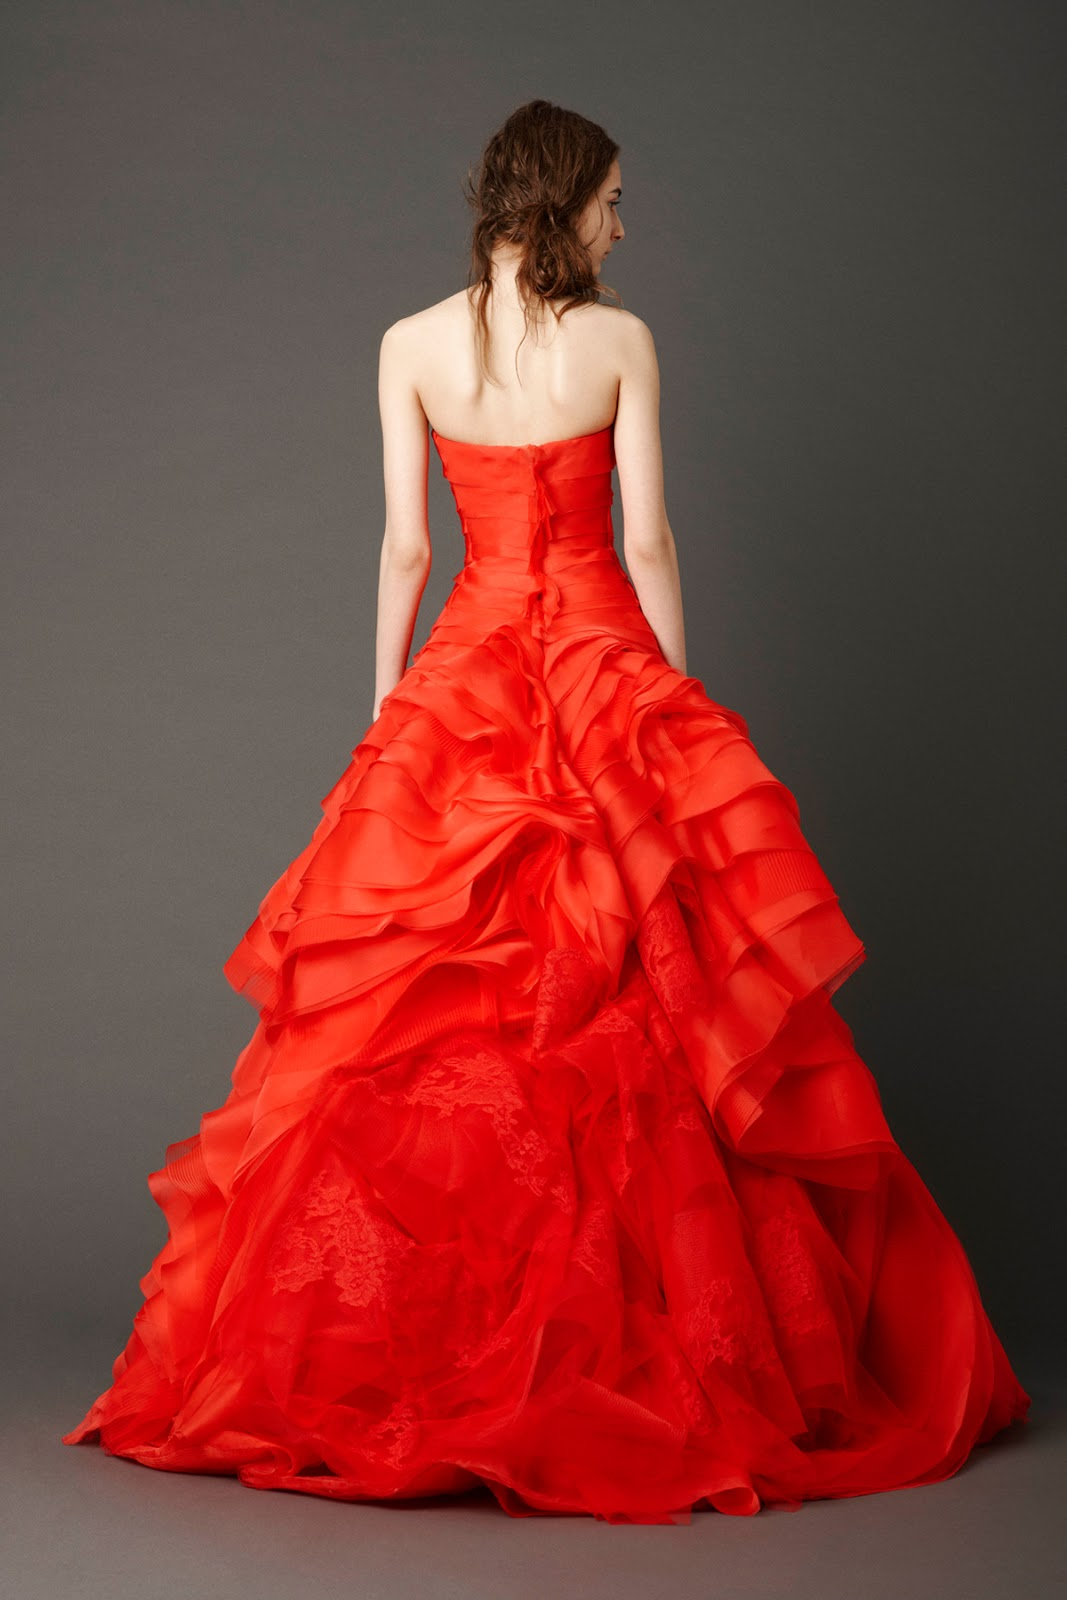 All for weddings a red vera wang bias tiers tulle wedding for All red wedding dresses